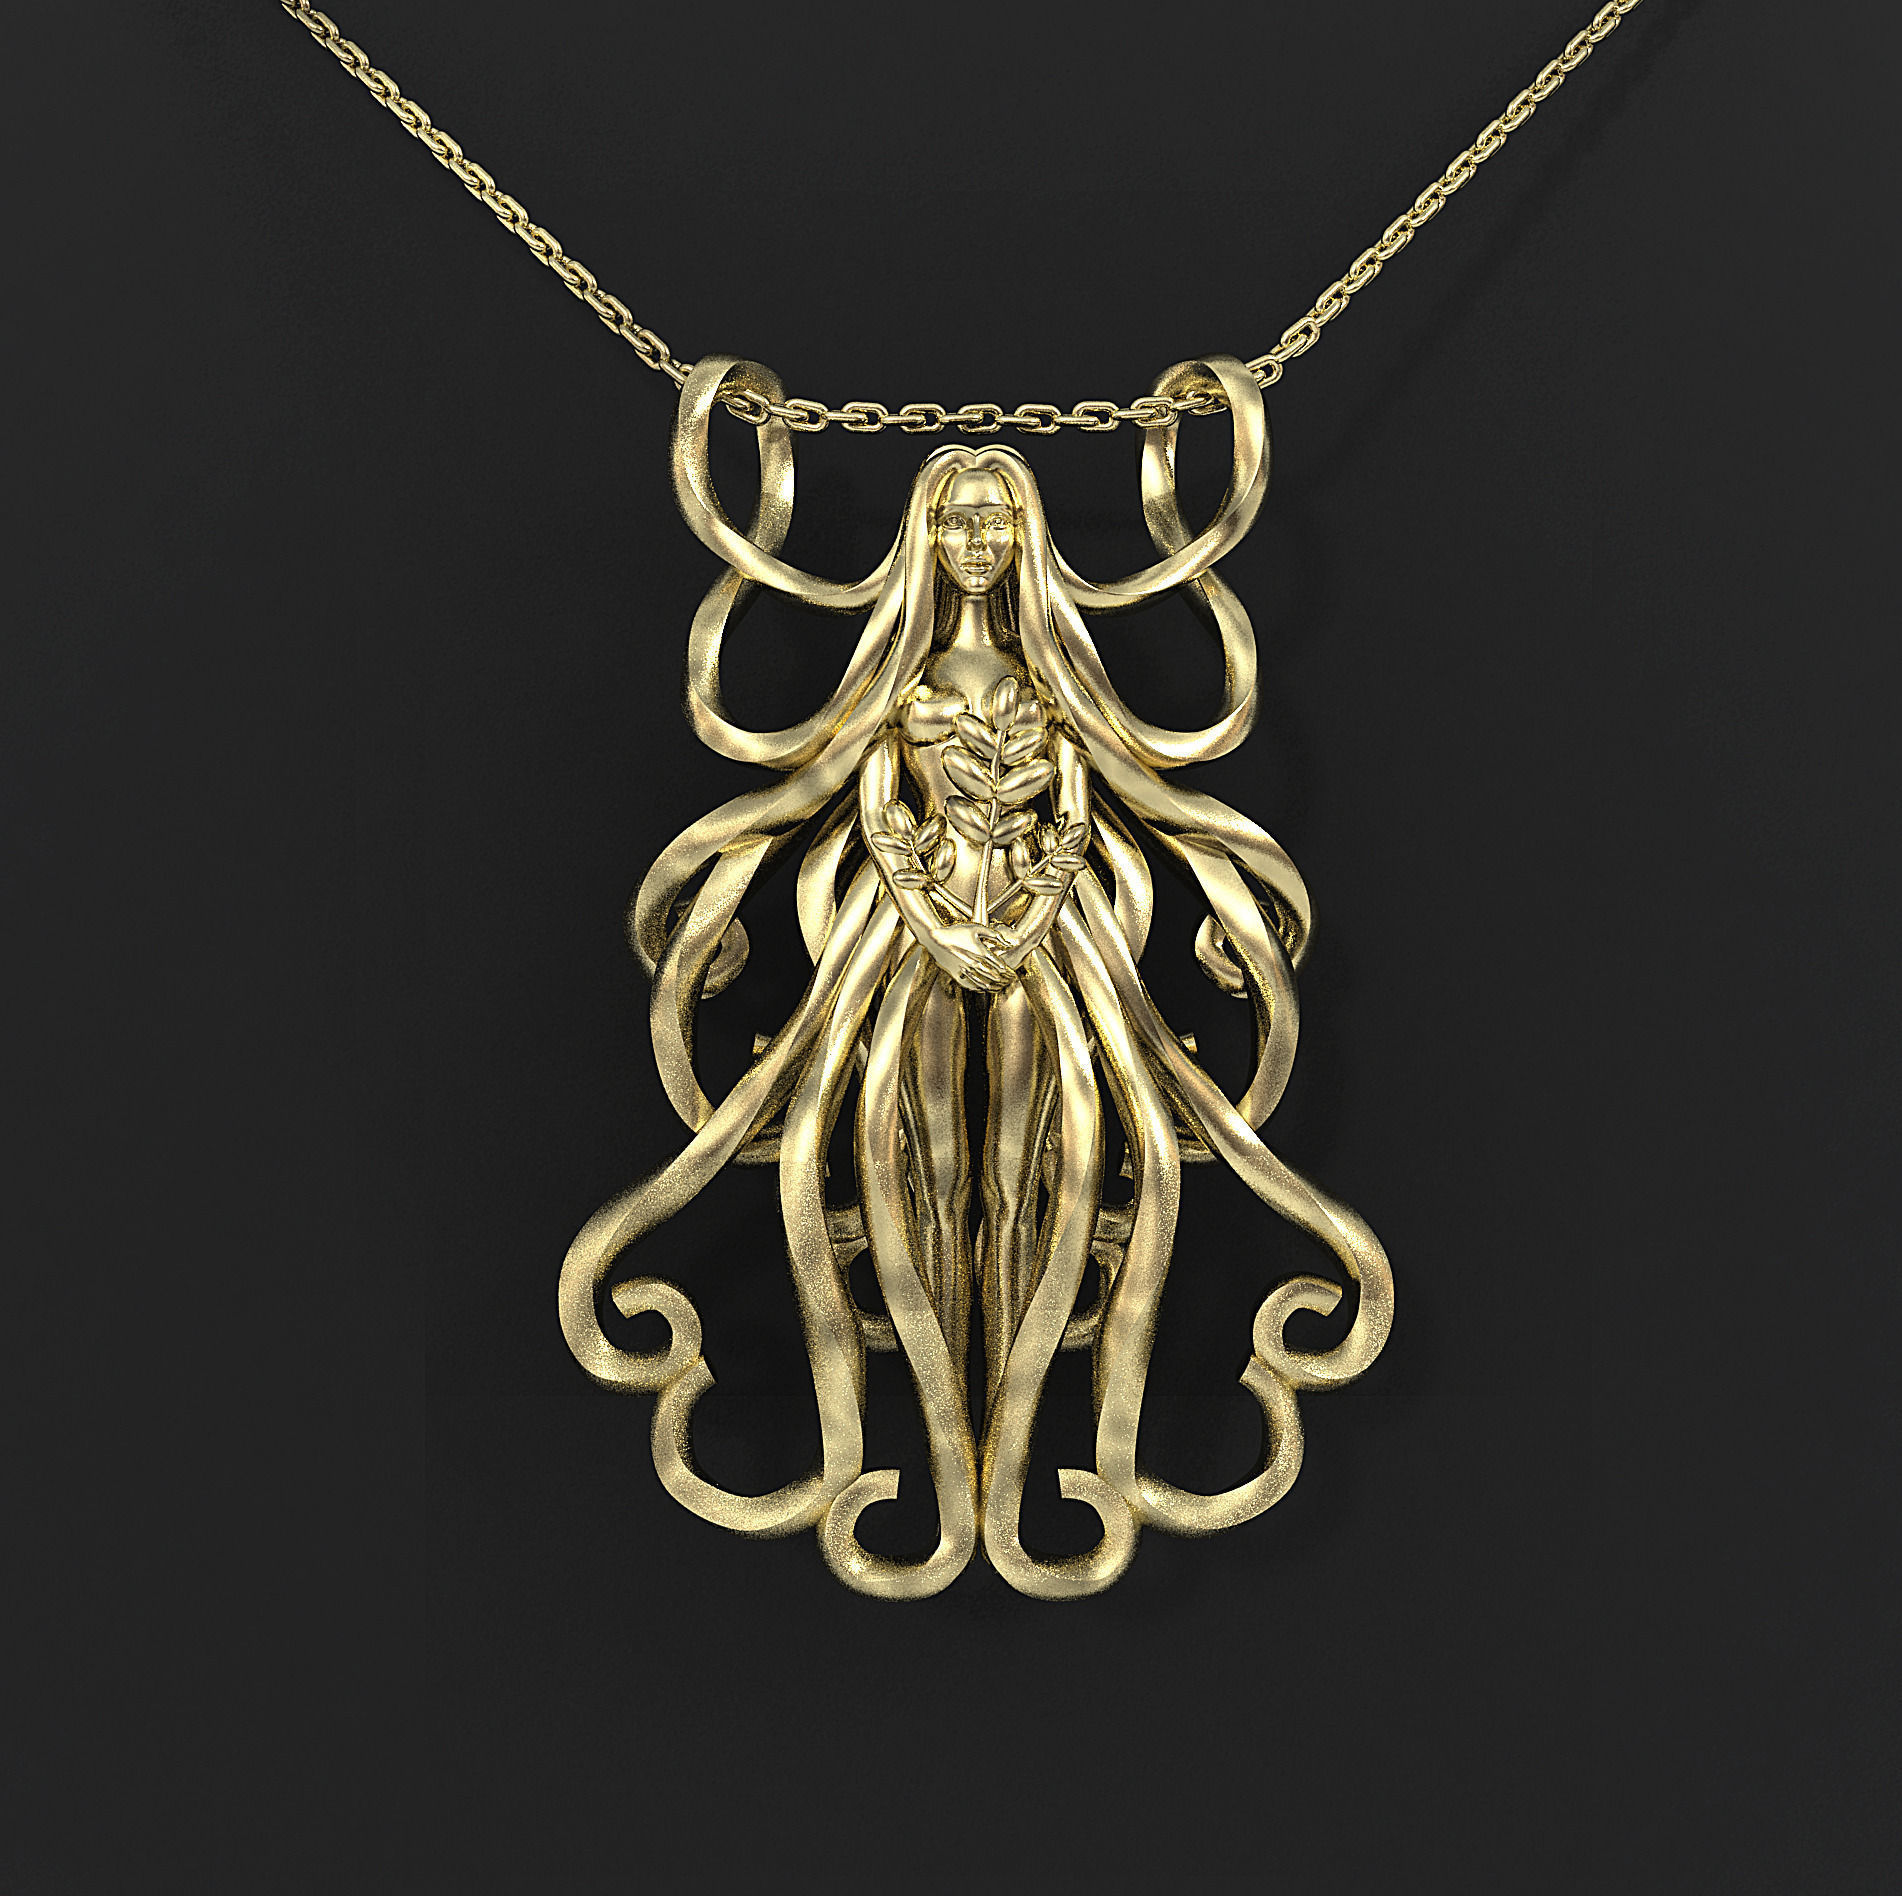 stilnest gold virgo en designer sn anna silver plated saccone gb necklace by in